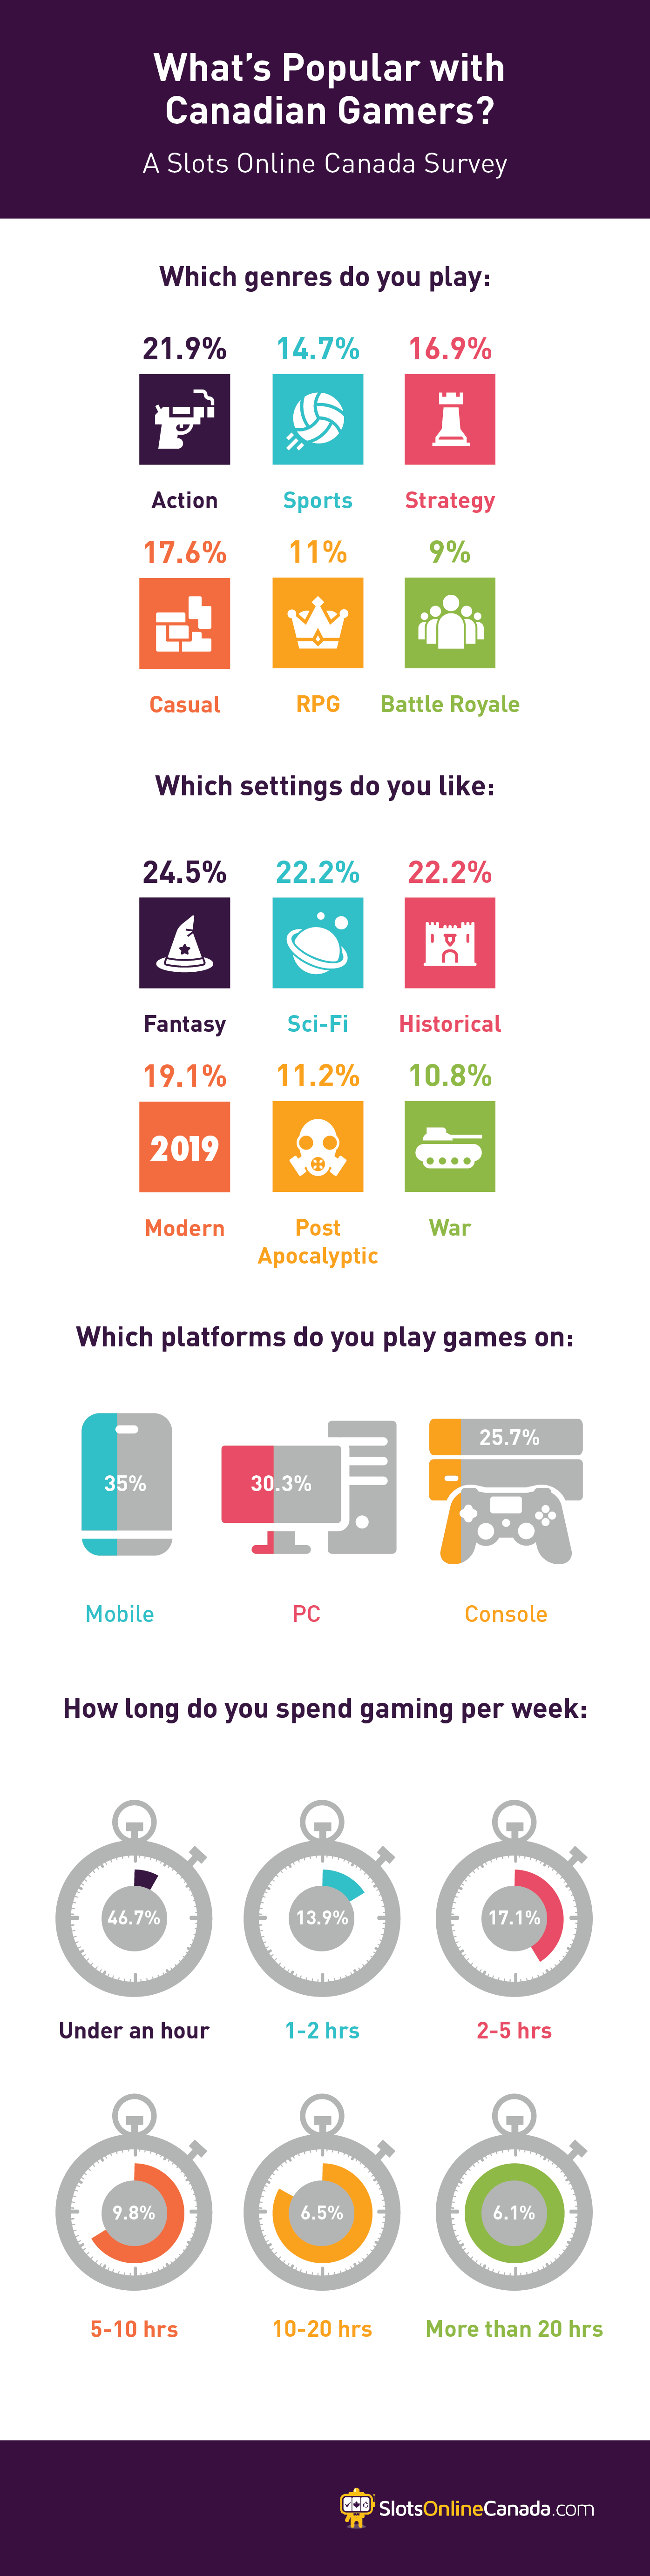 Whats popular with Canadian gamers